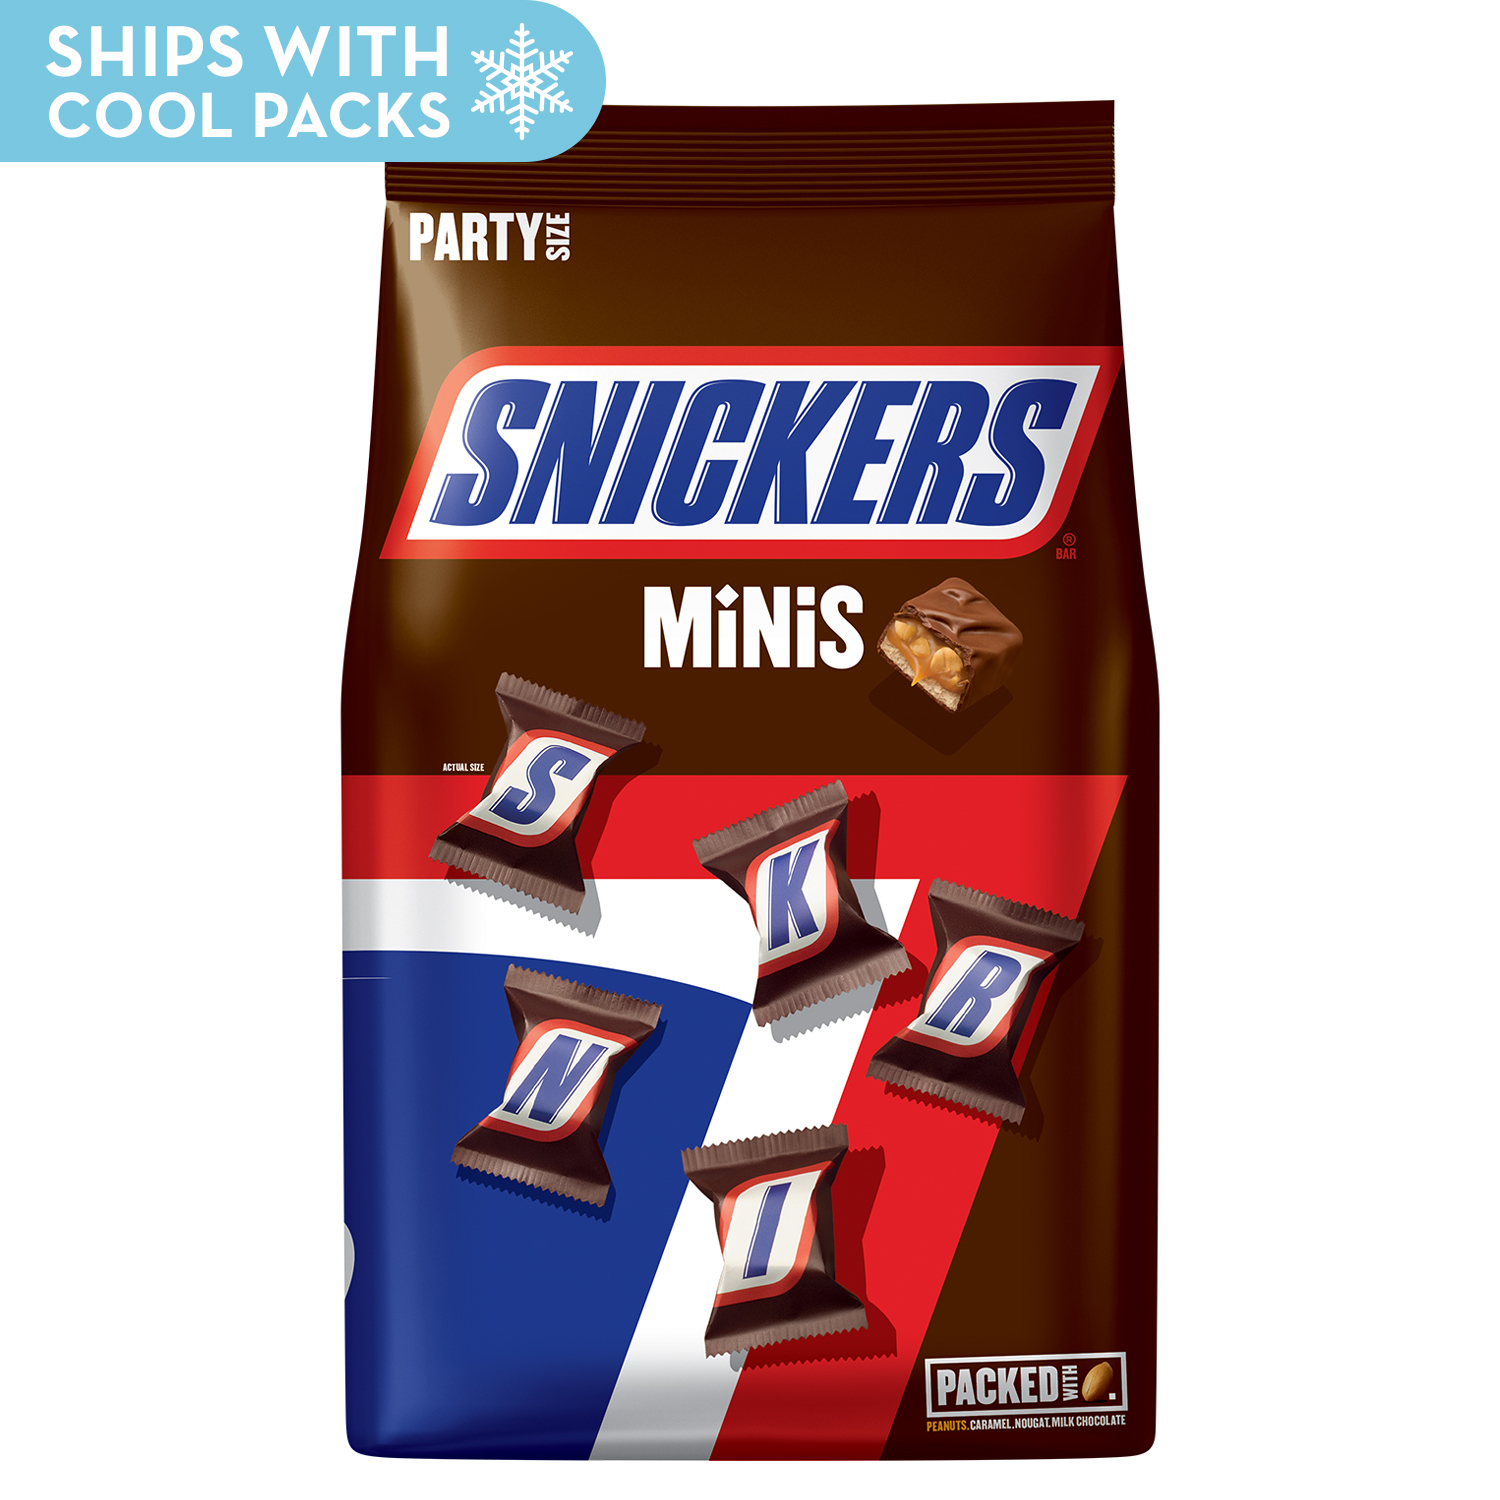 SNICKERS Minis Size Chocolate Bars Candy Bag, 40 oz